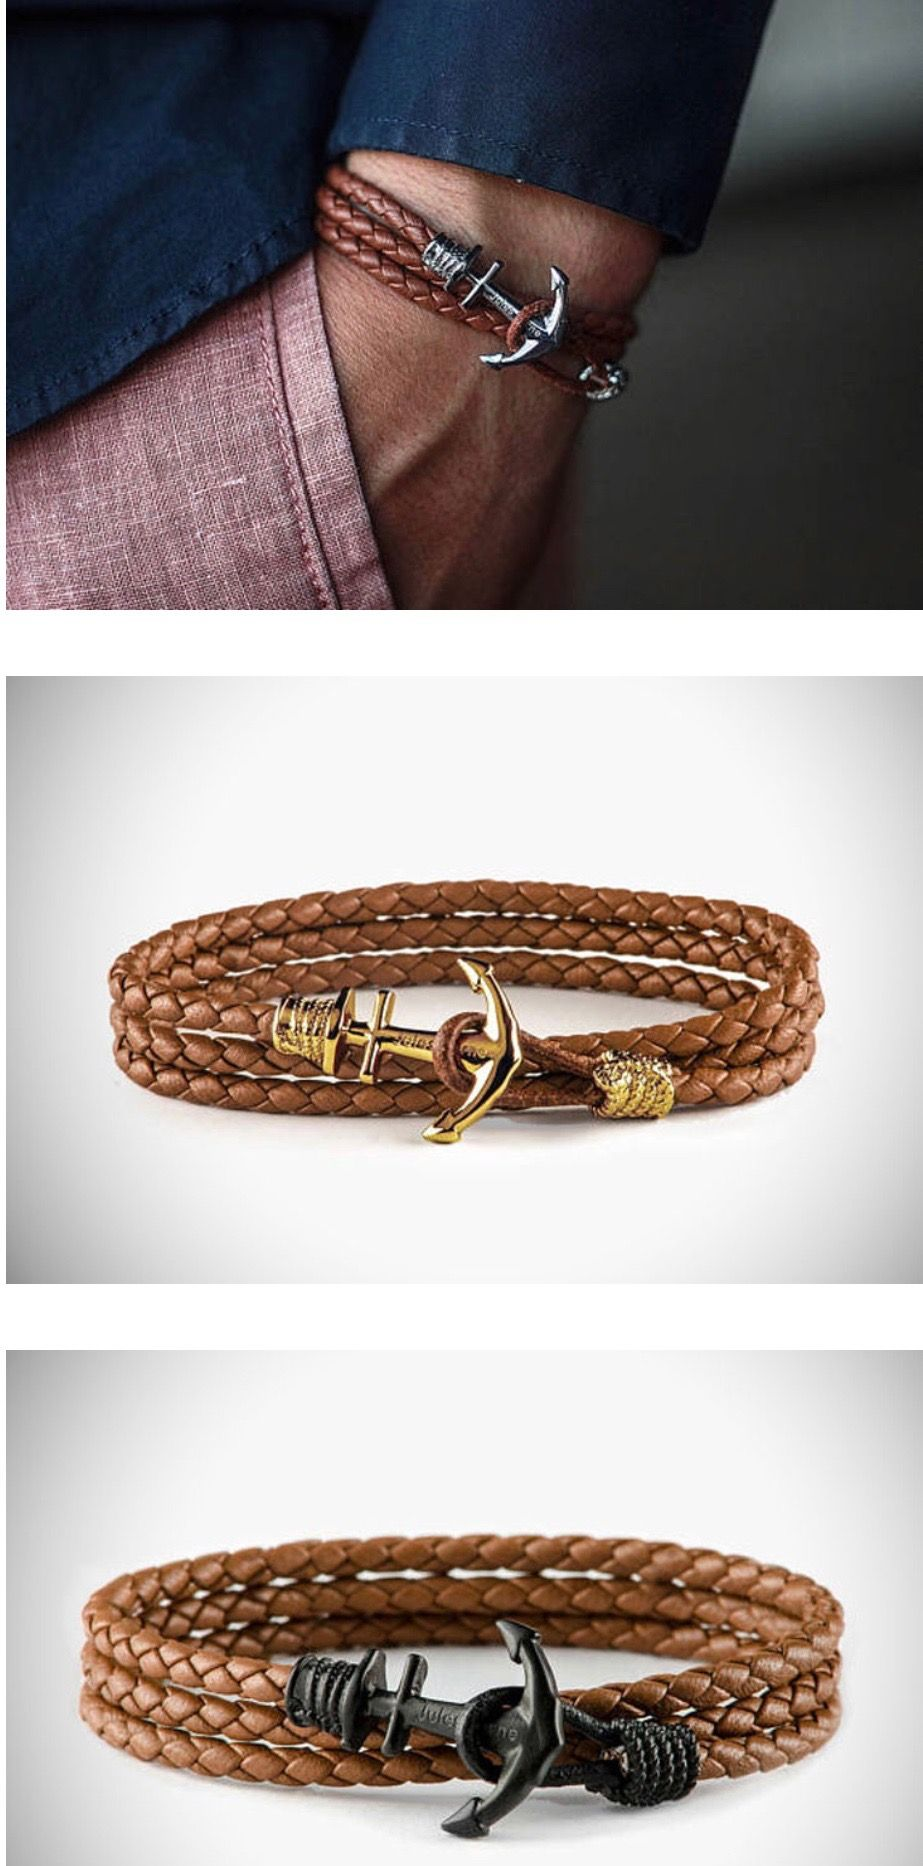 The Coolest Bracelets For Guys!